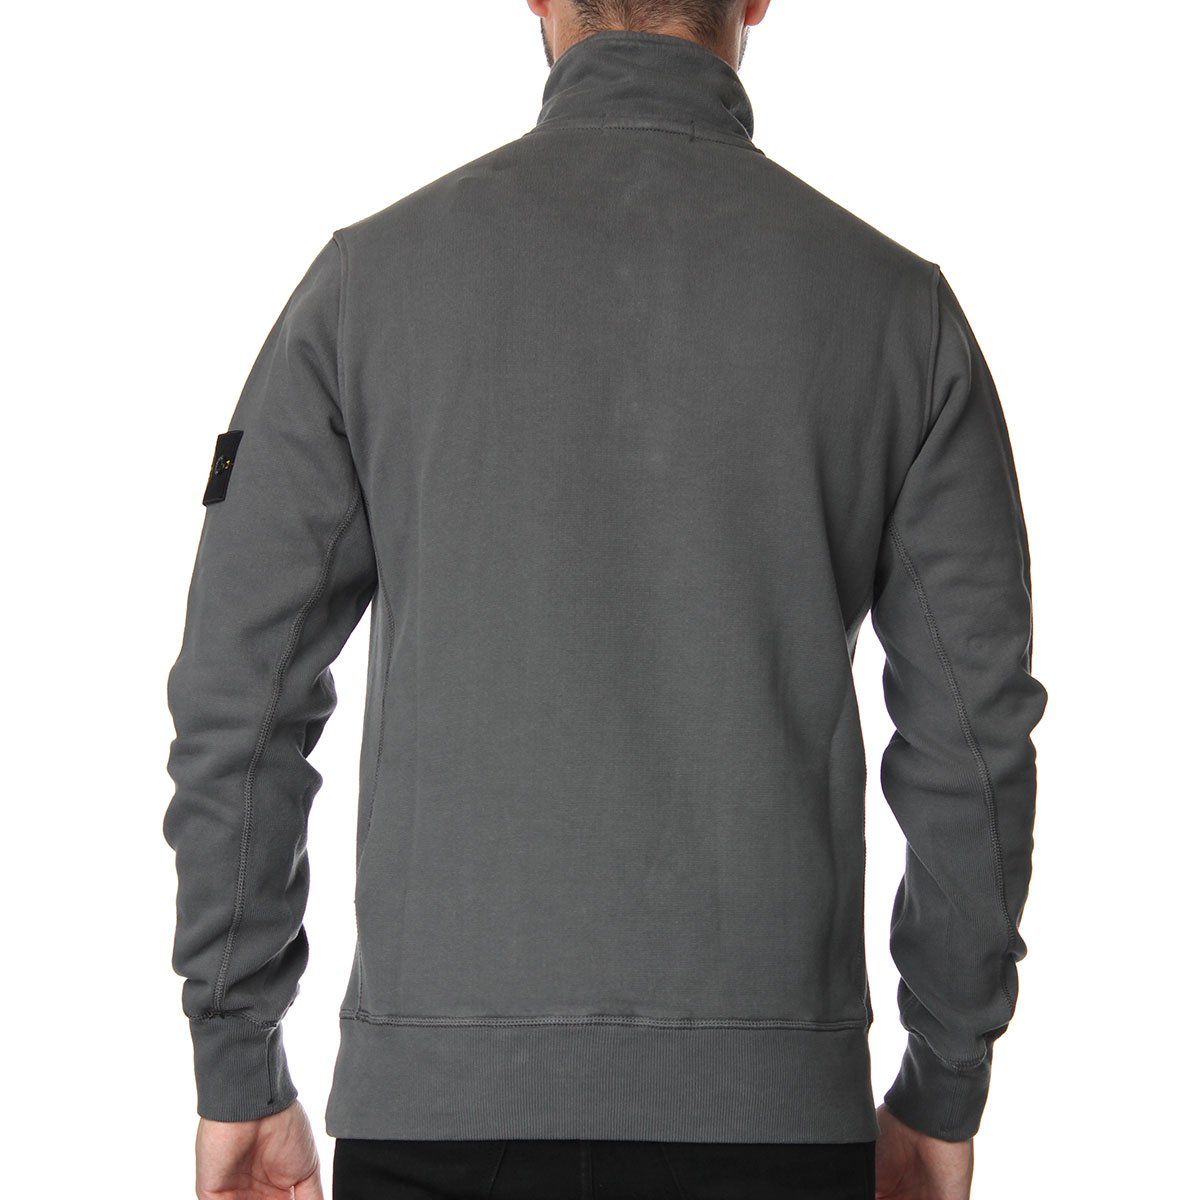 stone island 1 4 zip sweater stone island from the menswear site uk. Black Bedroom Furniture Sets. Home Design Ideas